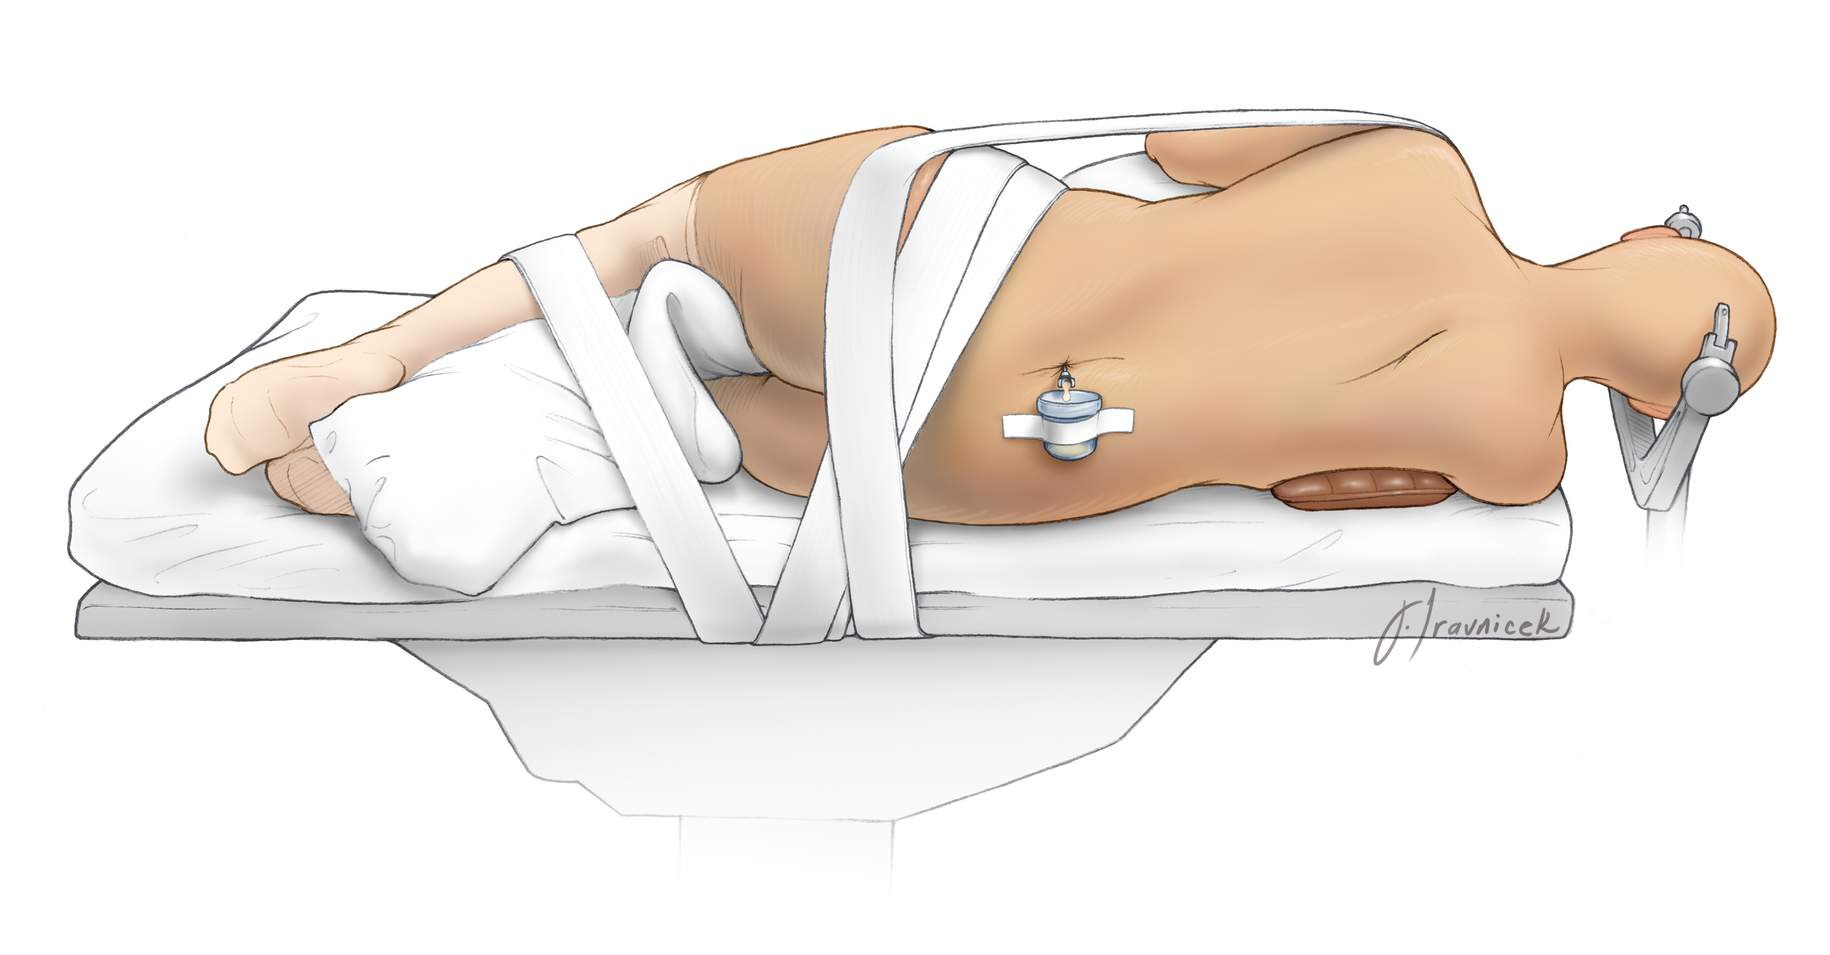 Figure 11: The lateral oblique position requires careful padding of all pressure points and meticulous fixation of the patient 's body to the table. Obese patients are especially at risk of migration or displacement. The adhesive tape should not compress the peroneal nerve near the head of the fibula.